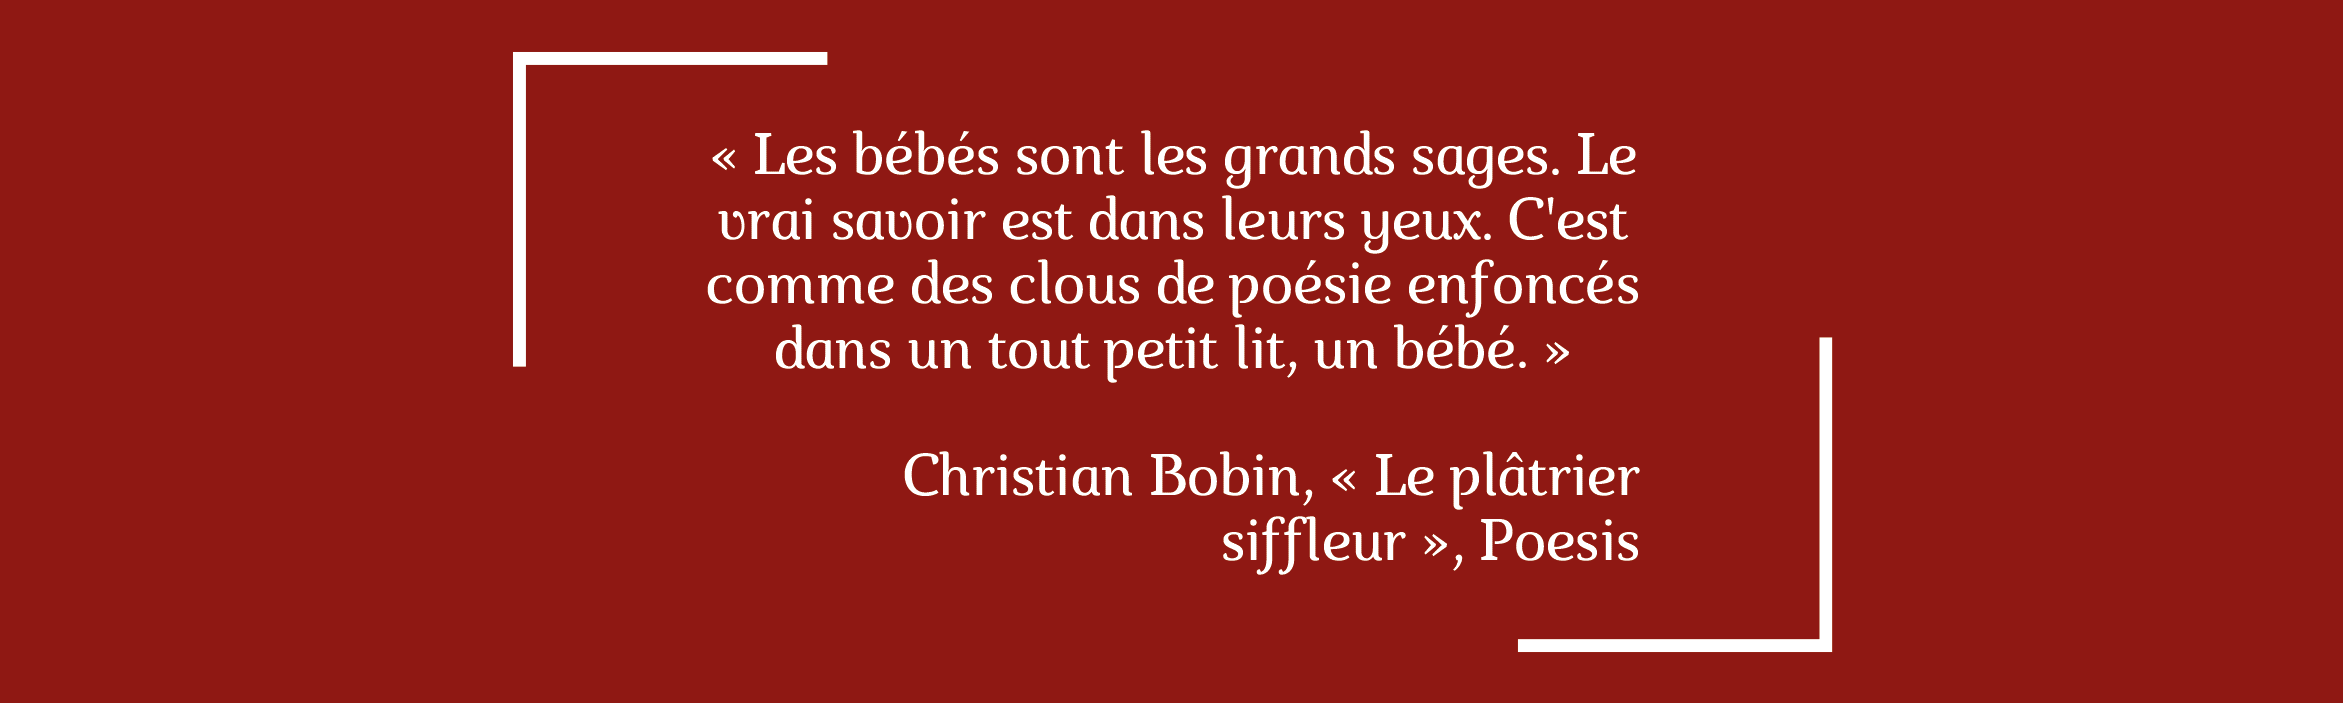 Le plâtrier siffleur - citation